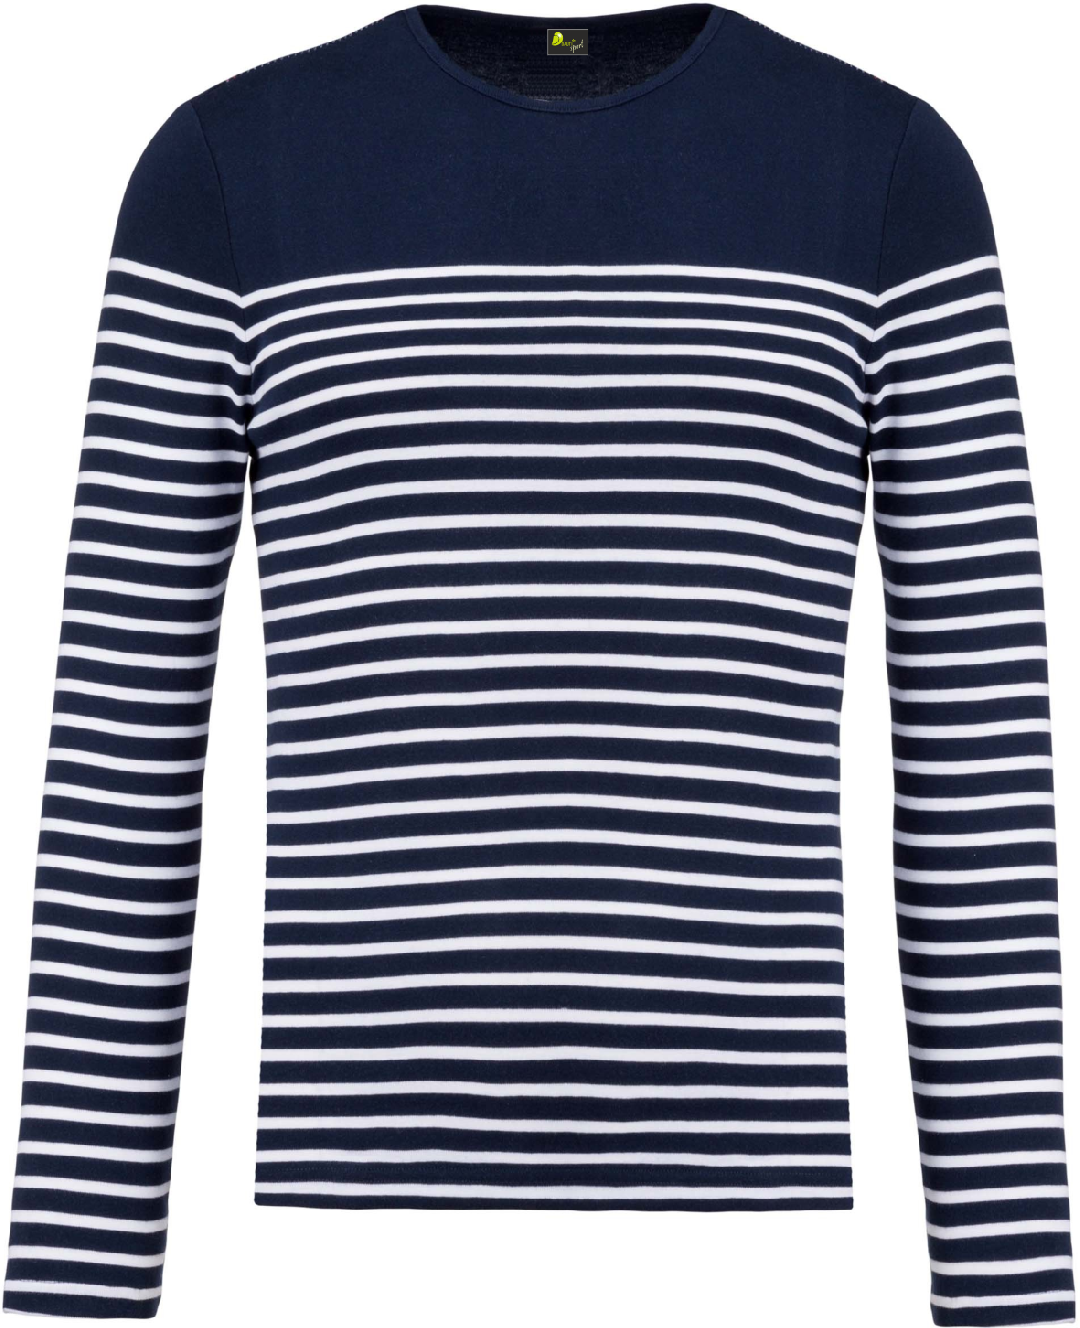 Knitted sailor style sweater - Urra